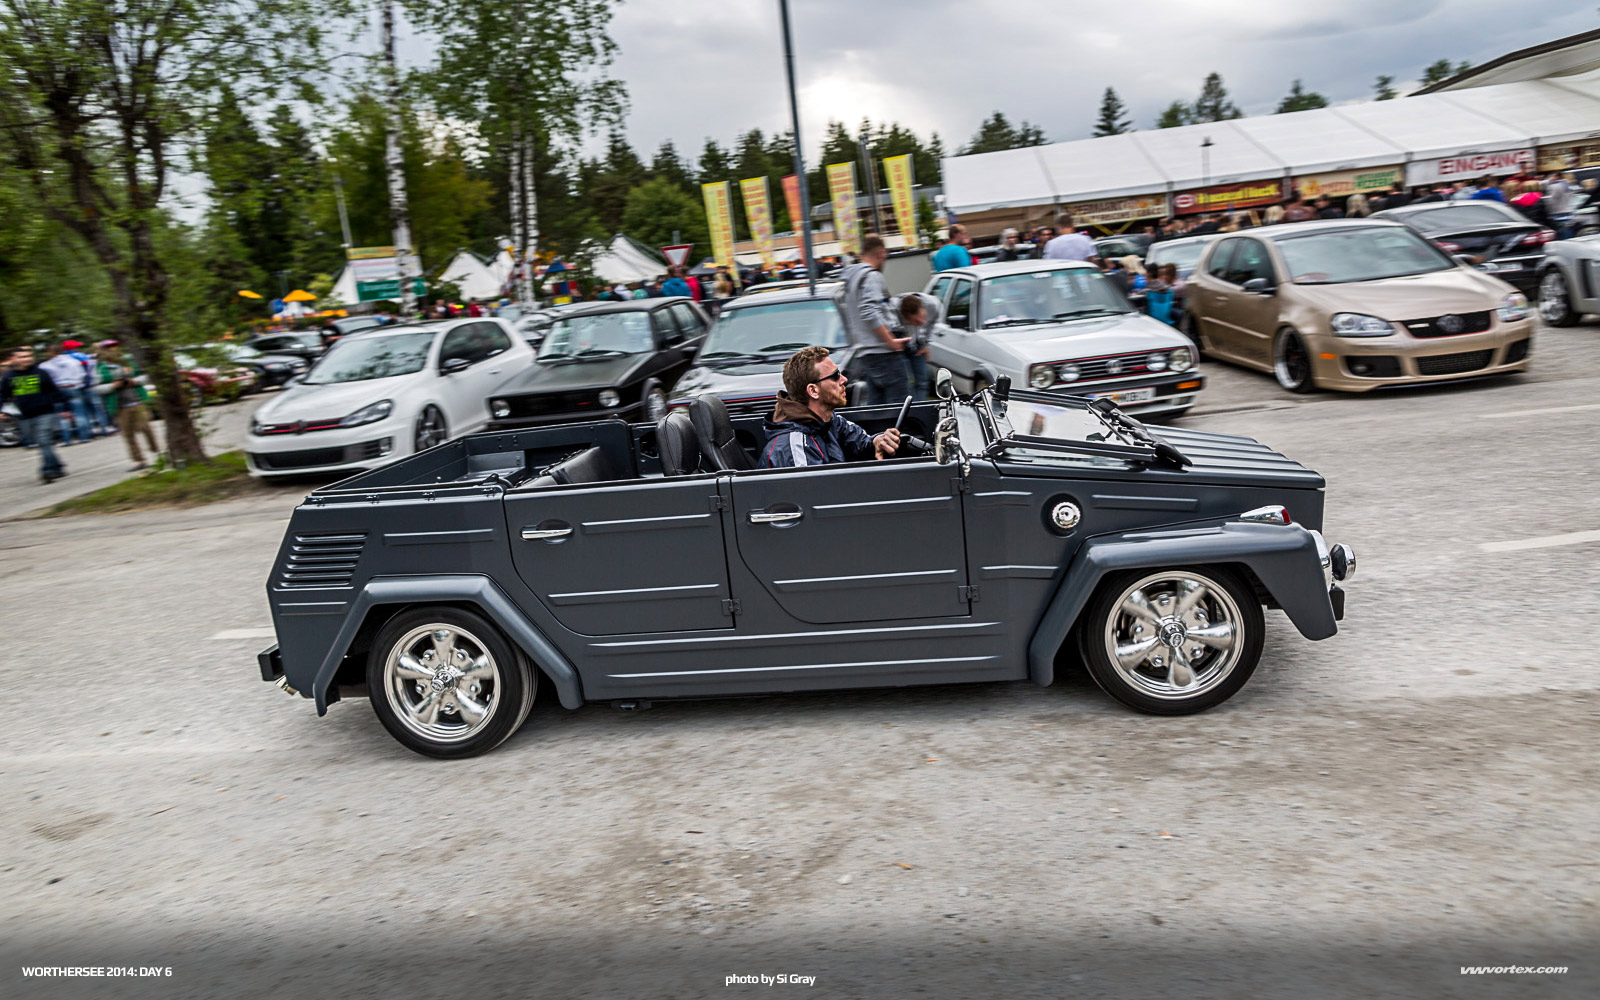 Worthersee 2014: Day 6 (photo: Si Gray)